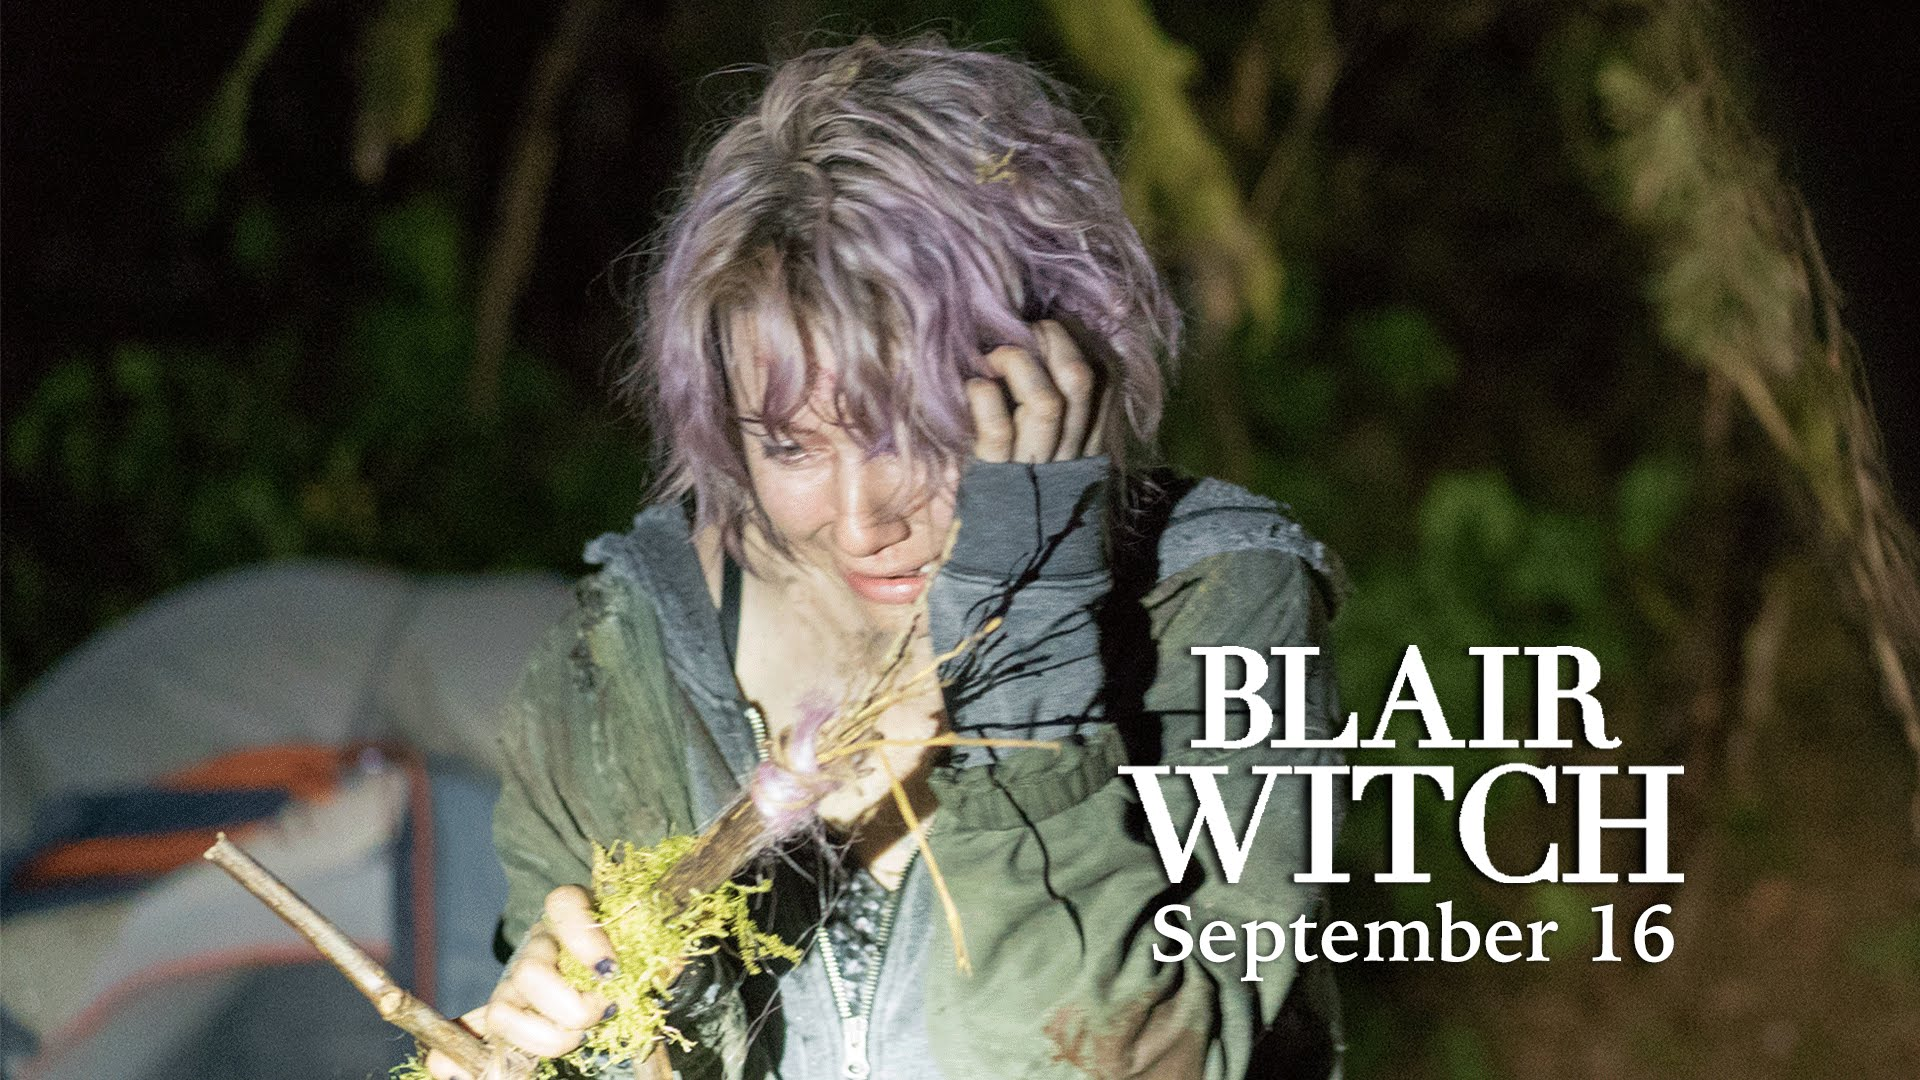 Blair Witch – In Theaters September 16